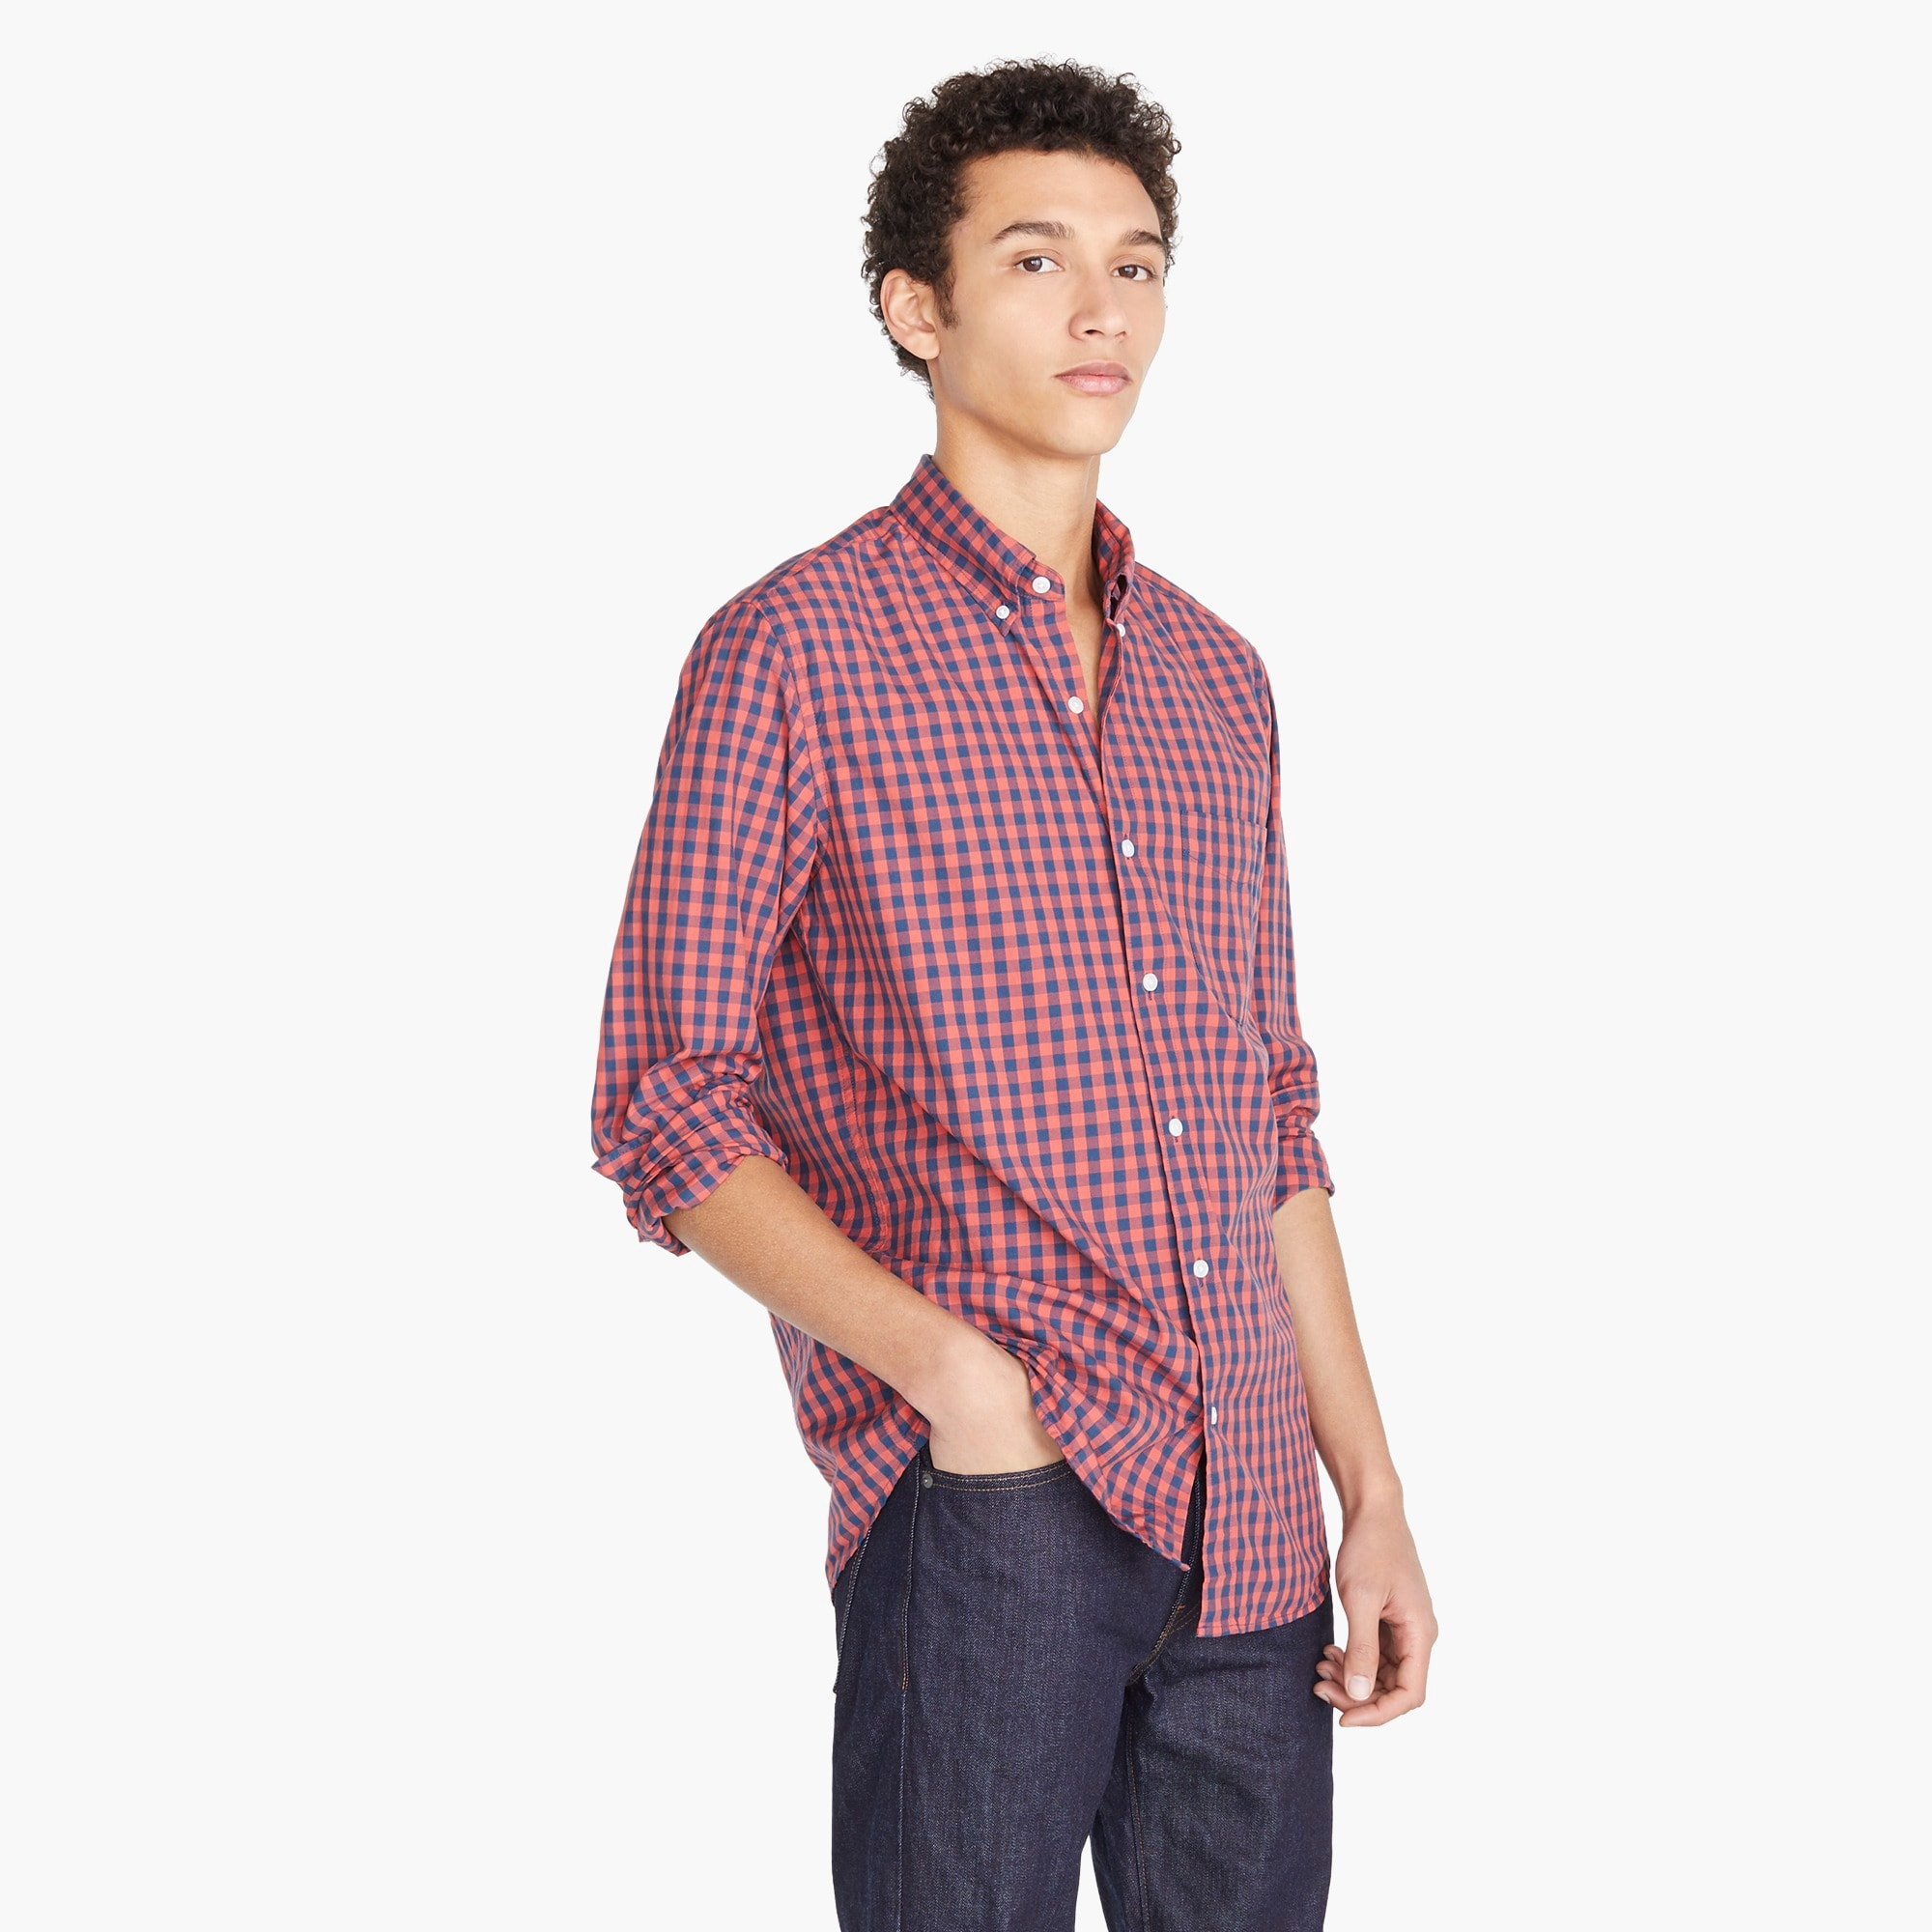 Image 2 for Stretch Secret Wash shirt in primary gingham